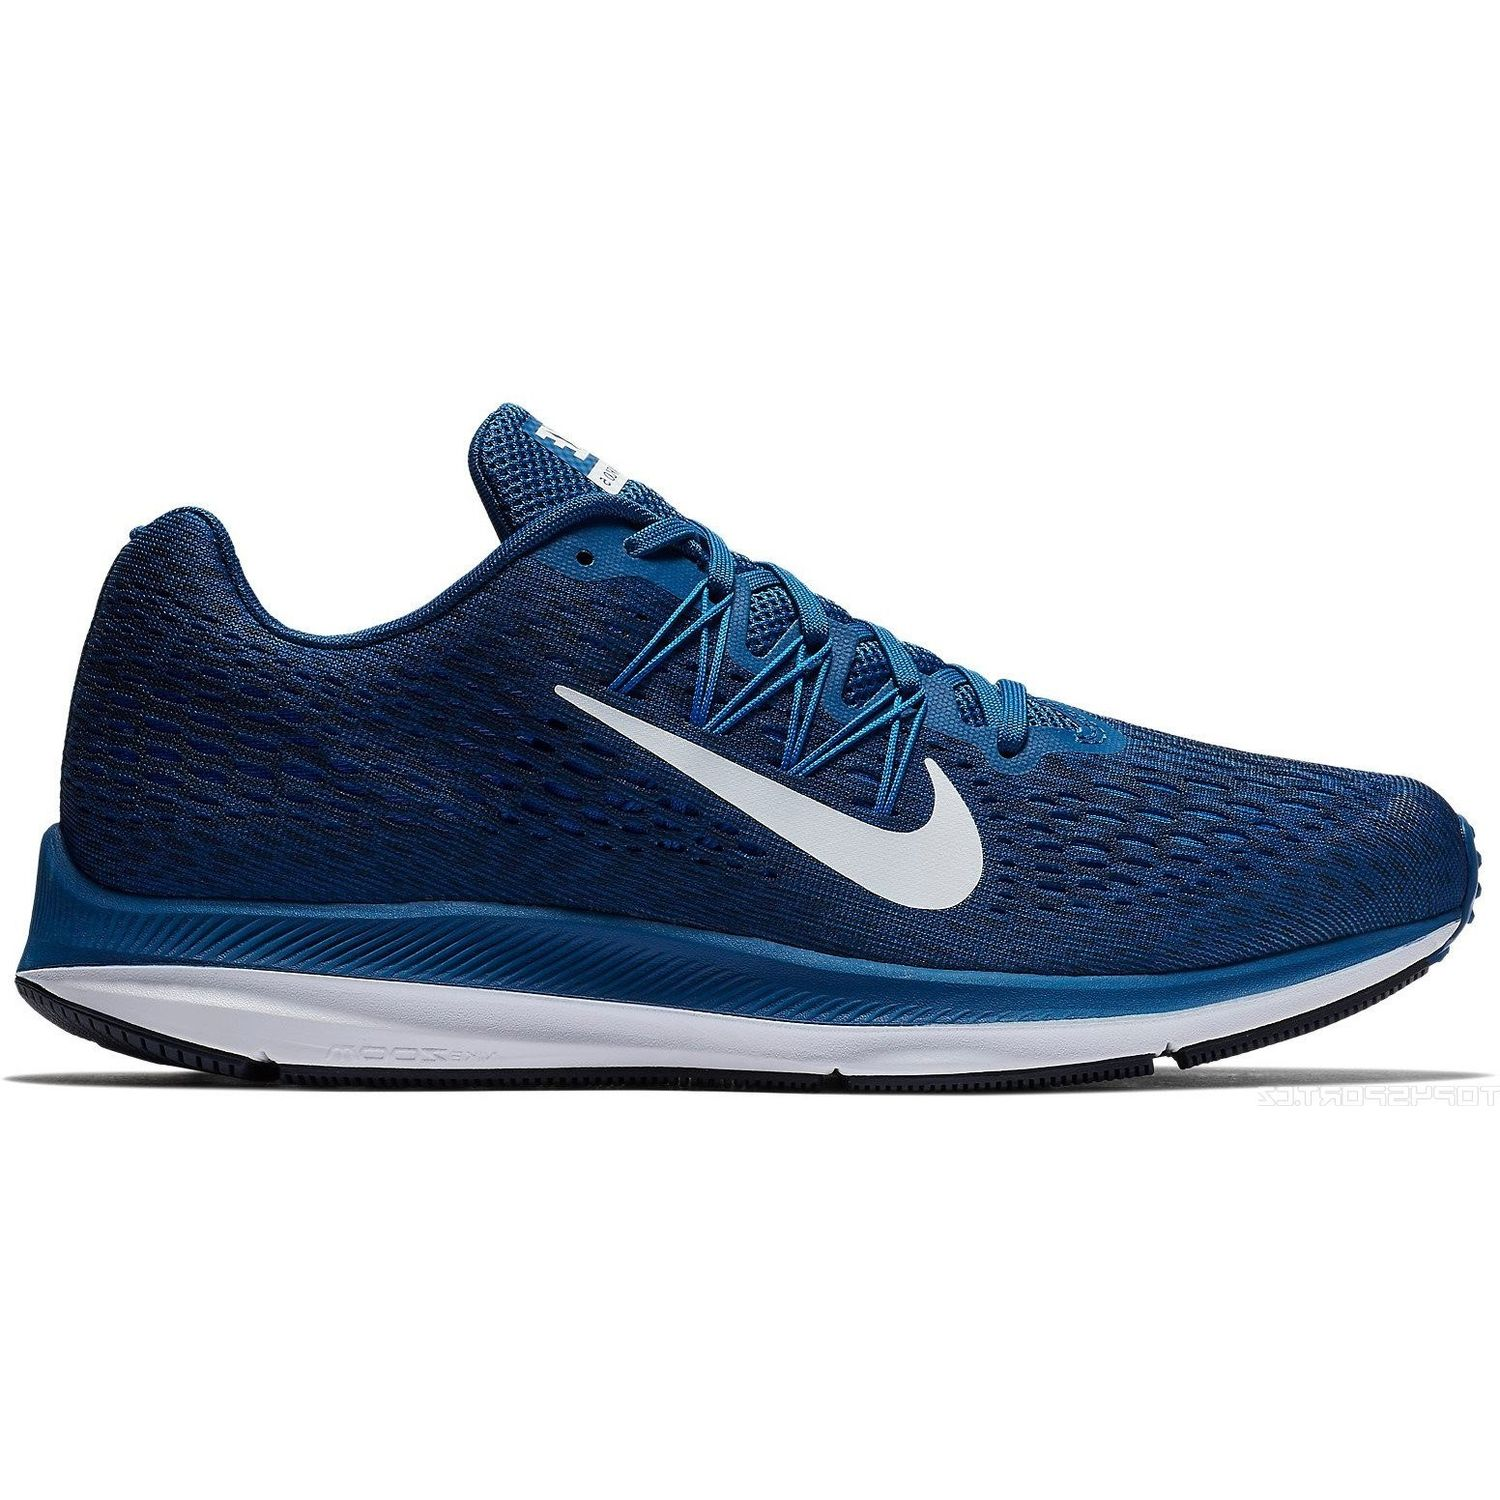 timeless design bc2e4 e5773 Zapatilla Nike Air Zoom Winflo 5 Running Hombre - sporting